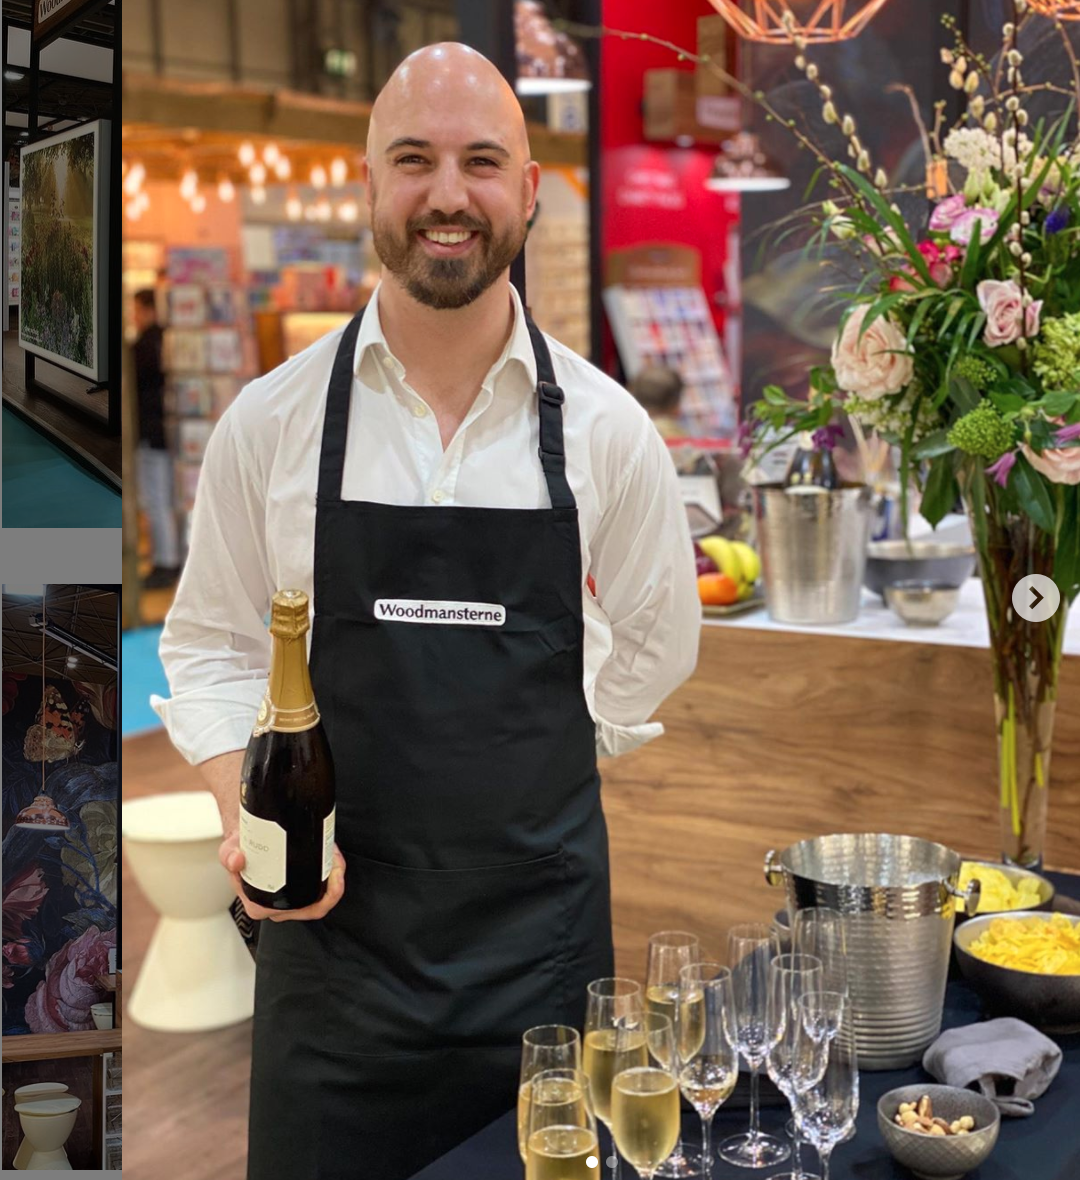 Above: Seth Woodmansterne, serving champagne to customers at this February's show. The champers will need to stay on ice until the 2022 show now.